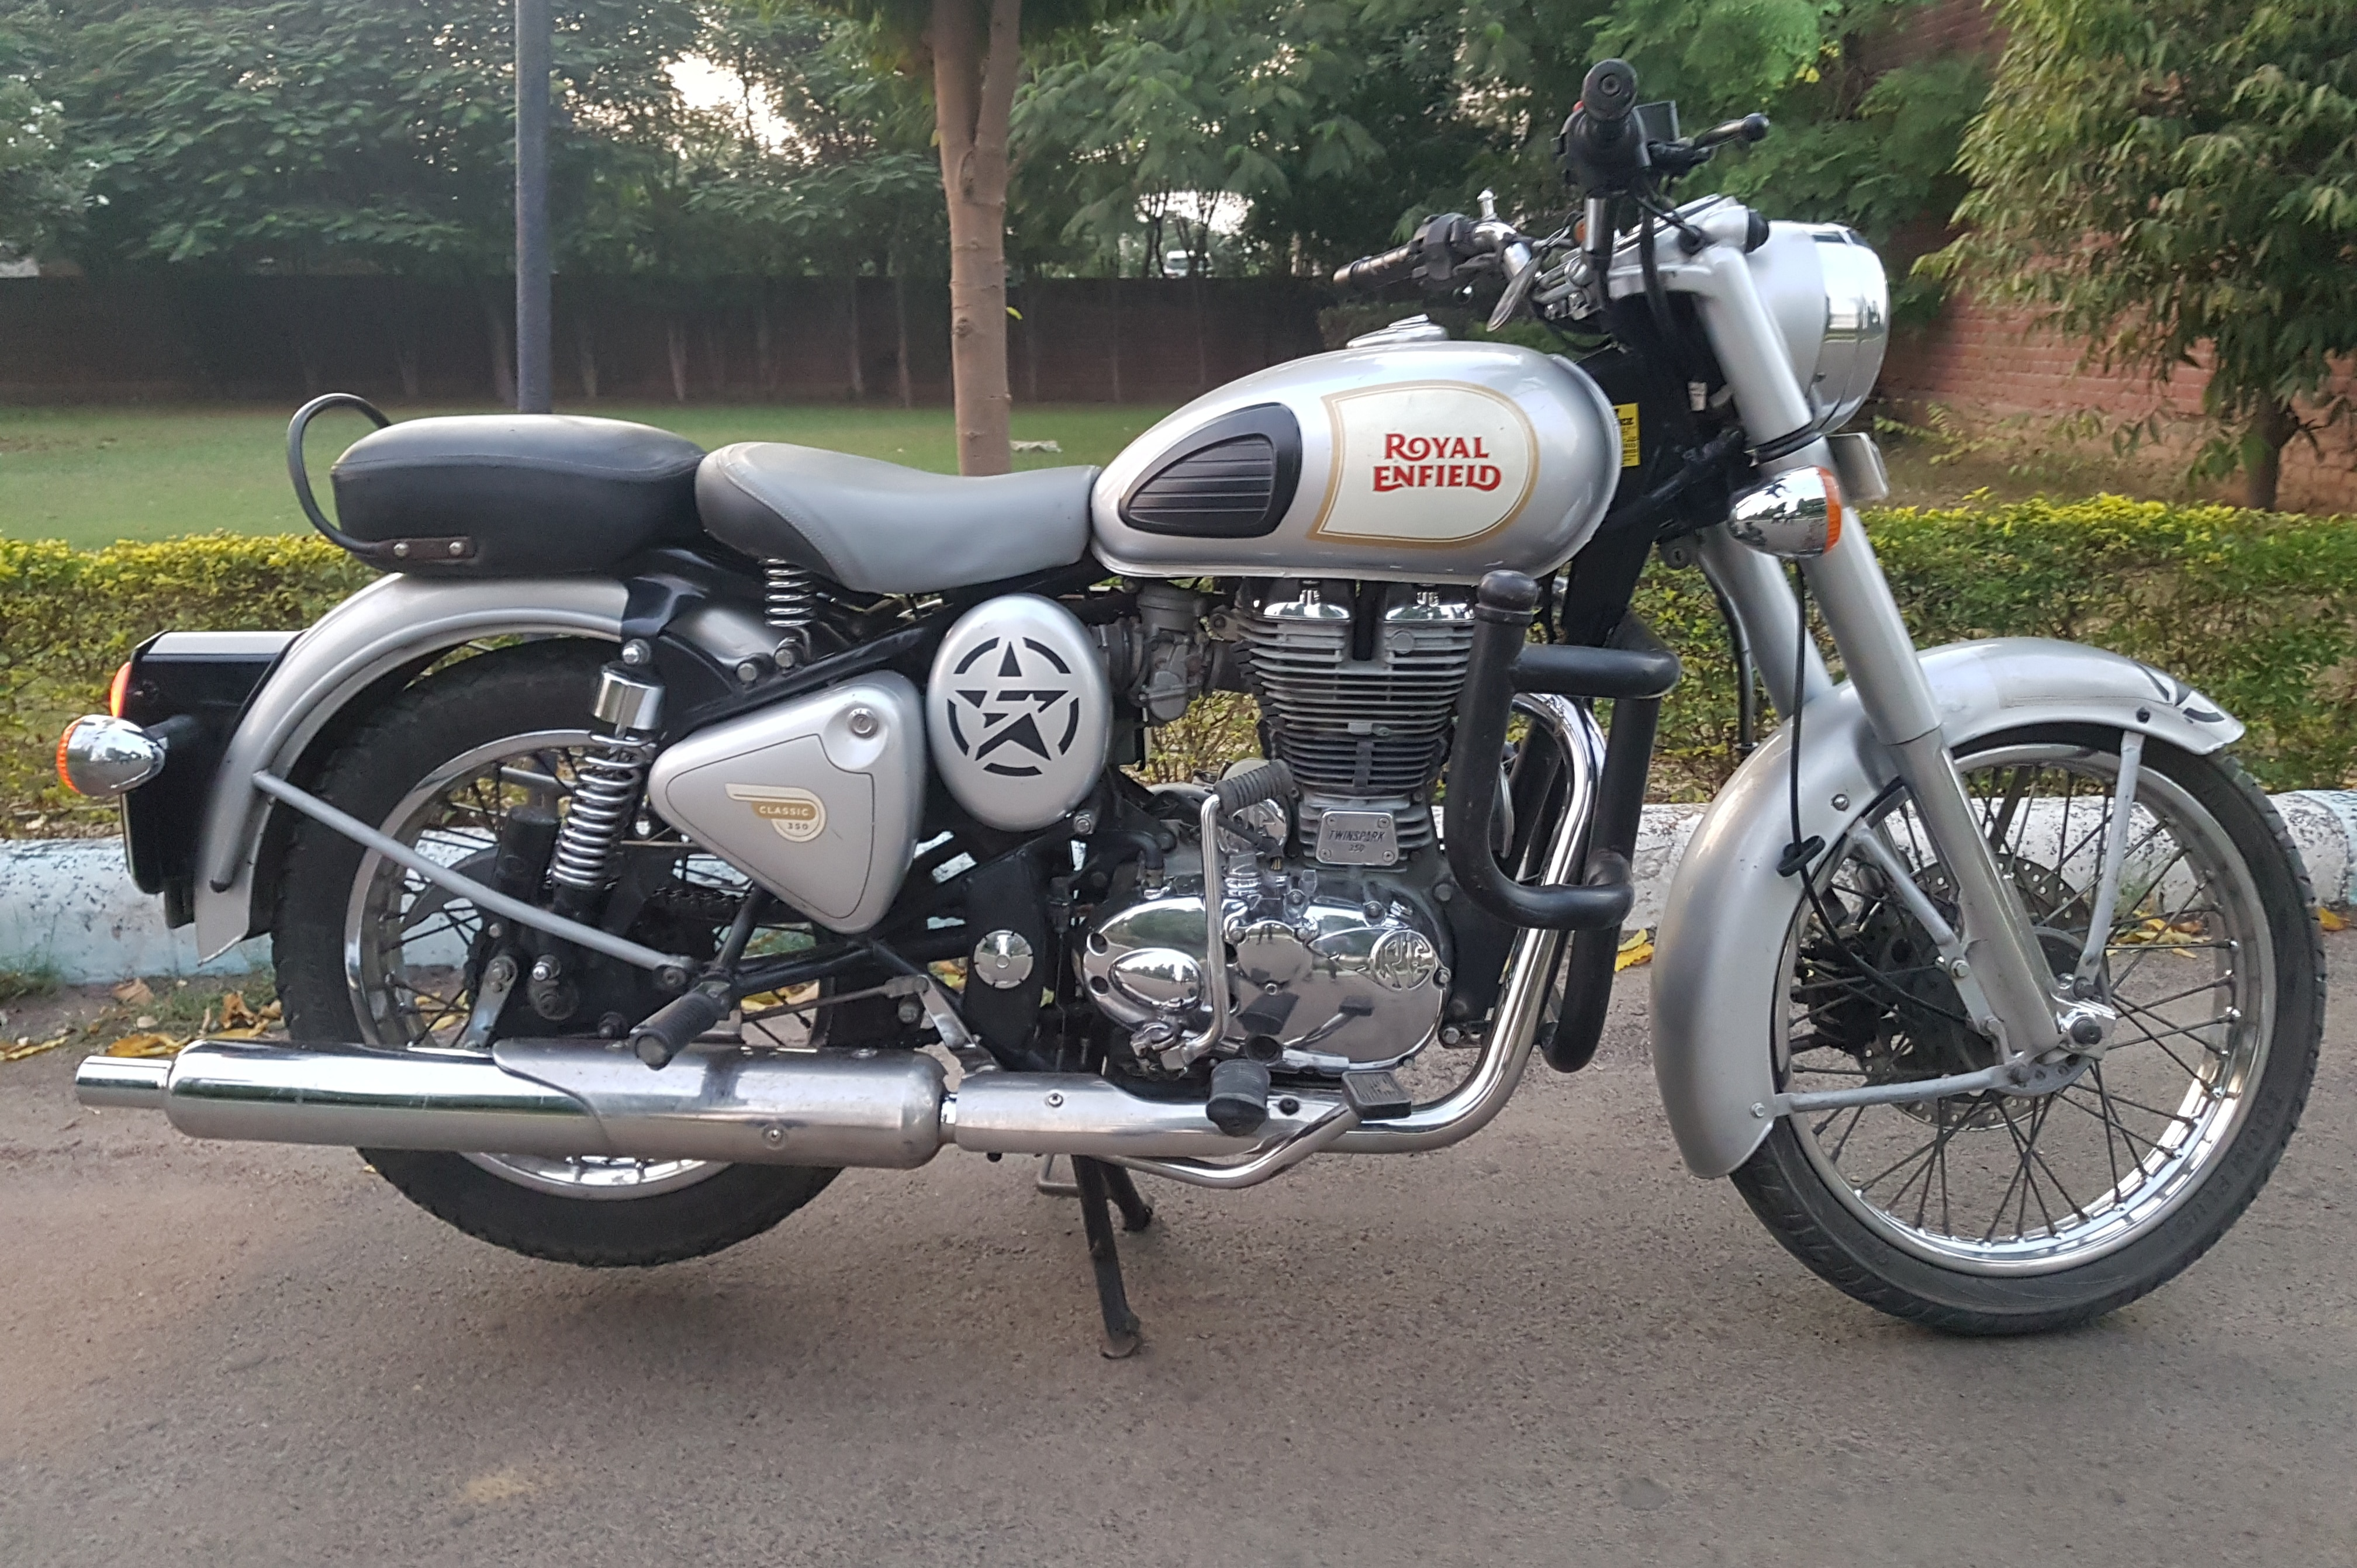 Royal Enfield Classic 350 Vs Jawa Jawa Know Which Is Better